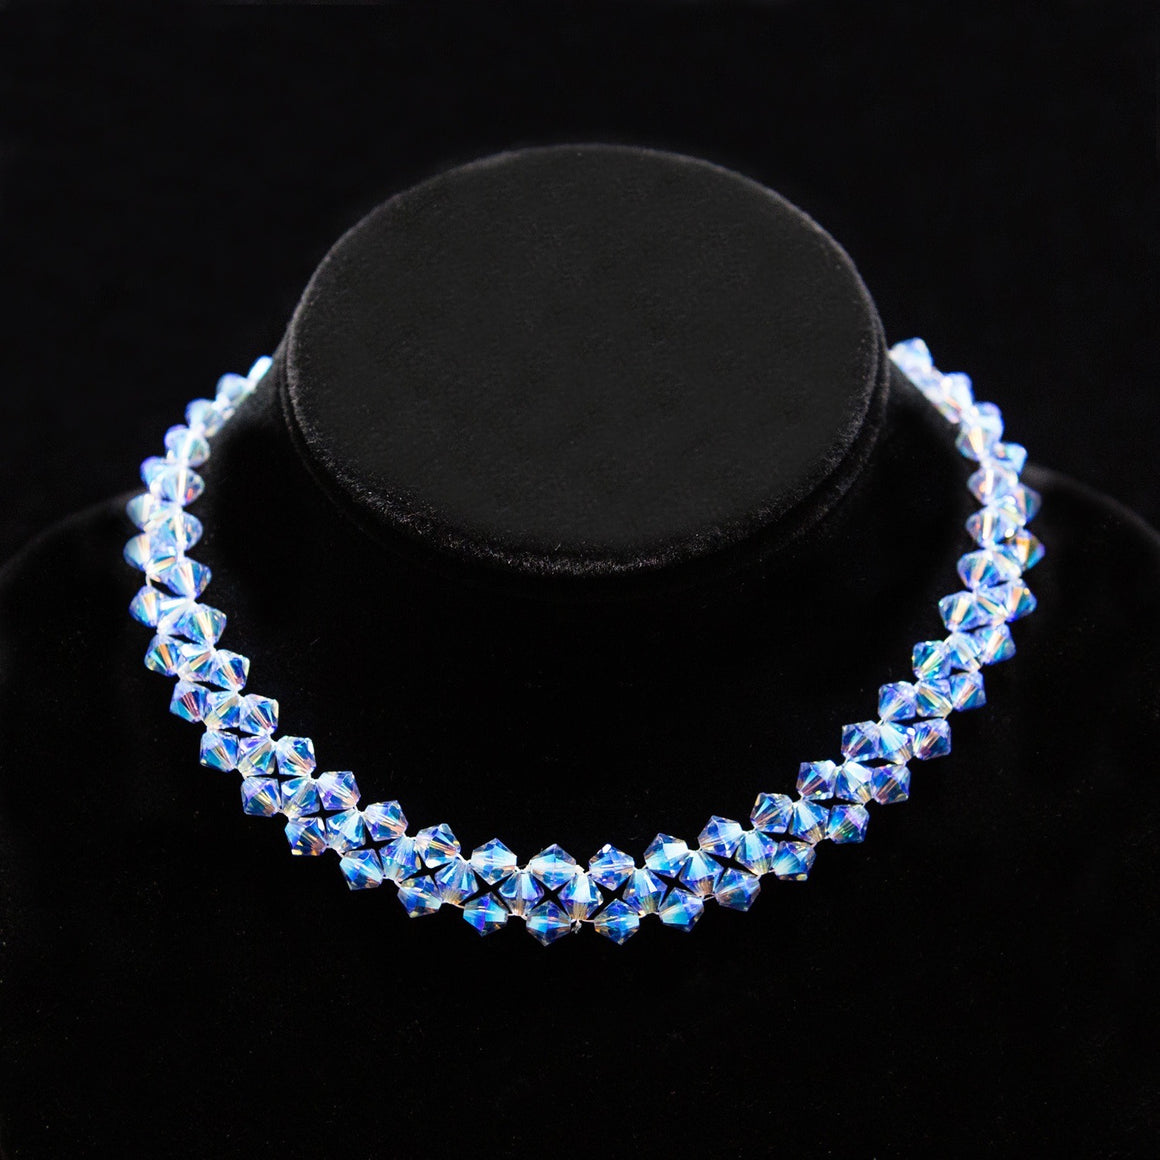 Day Collar: Hand Woven Water-Blue Iridescent Swarovski Crystal Beads